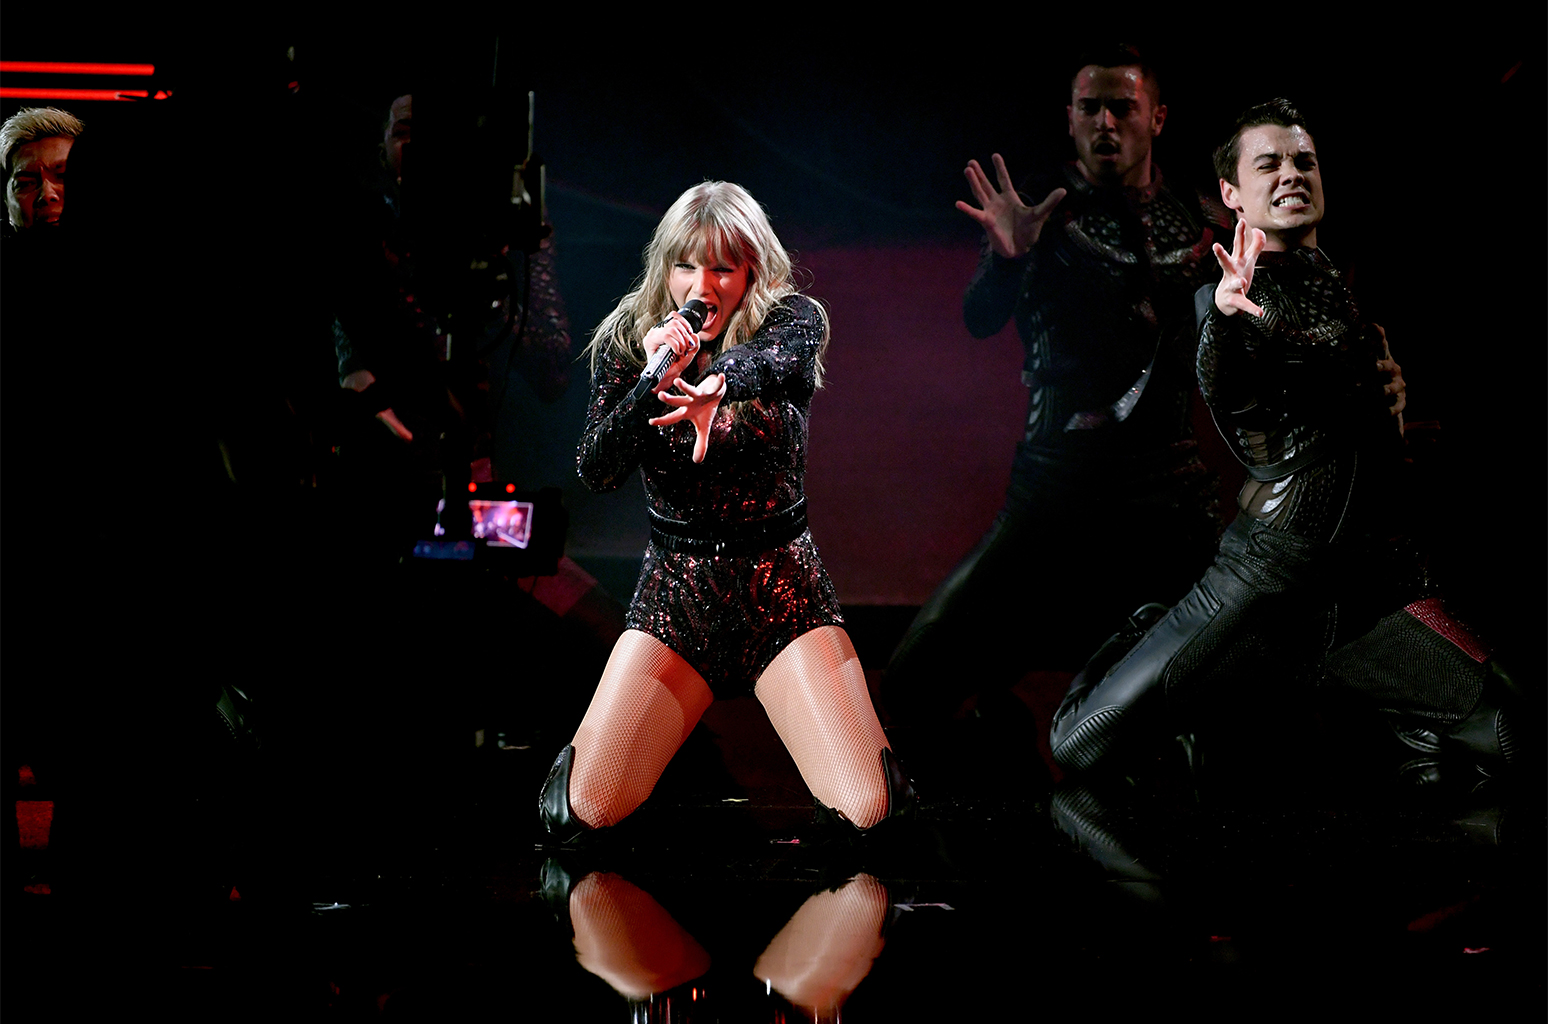 02-taylor-swift-ama-2018-show-billboard-1548.jpg